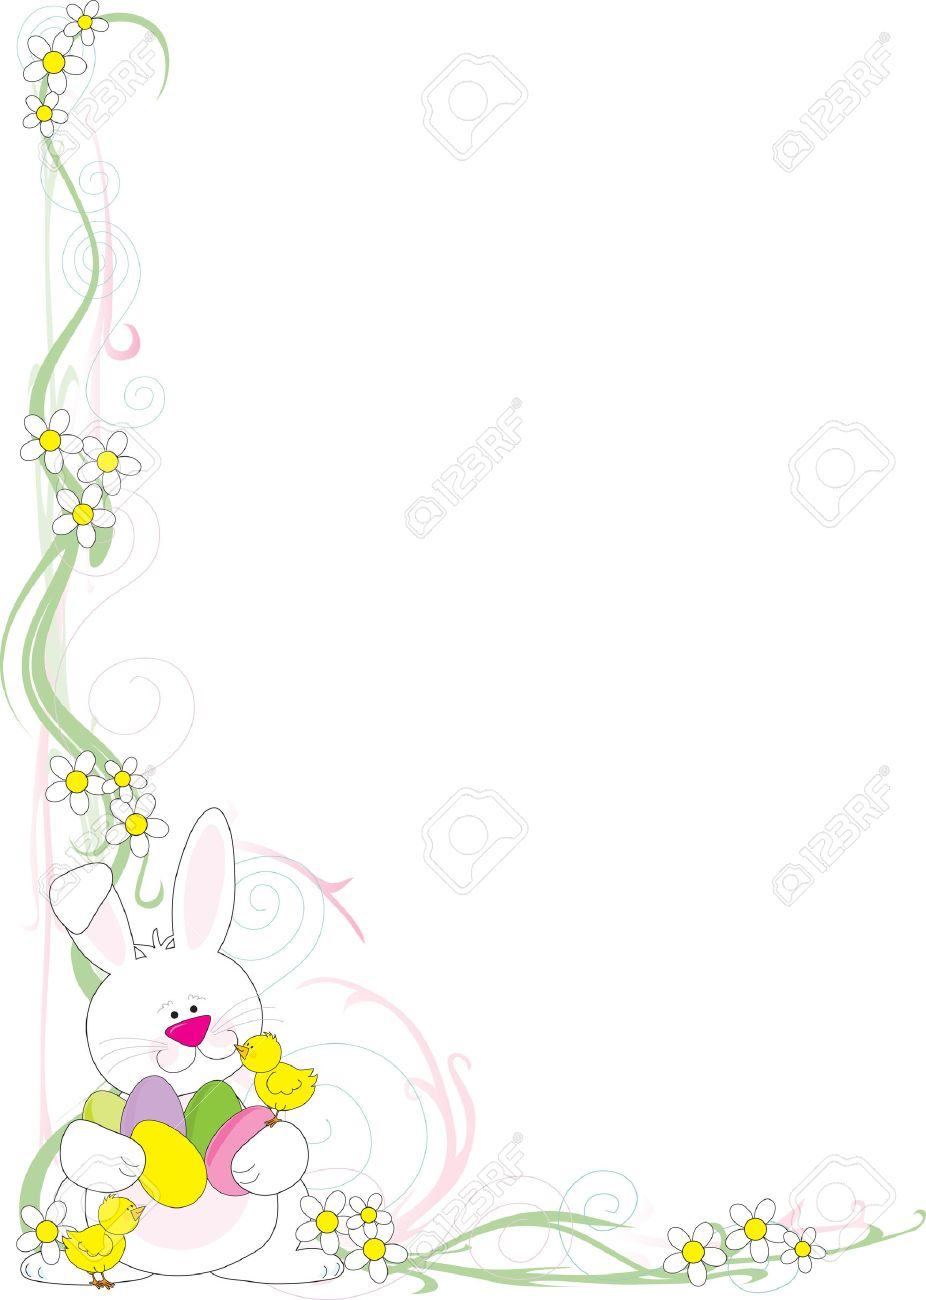 A frame or border featuring an Easter Bunny wit h chicks and...